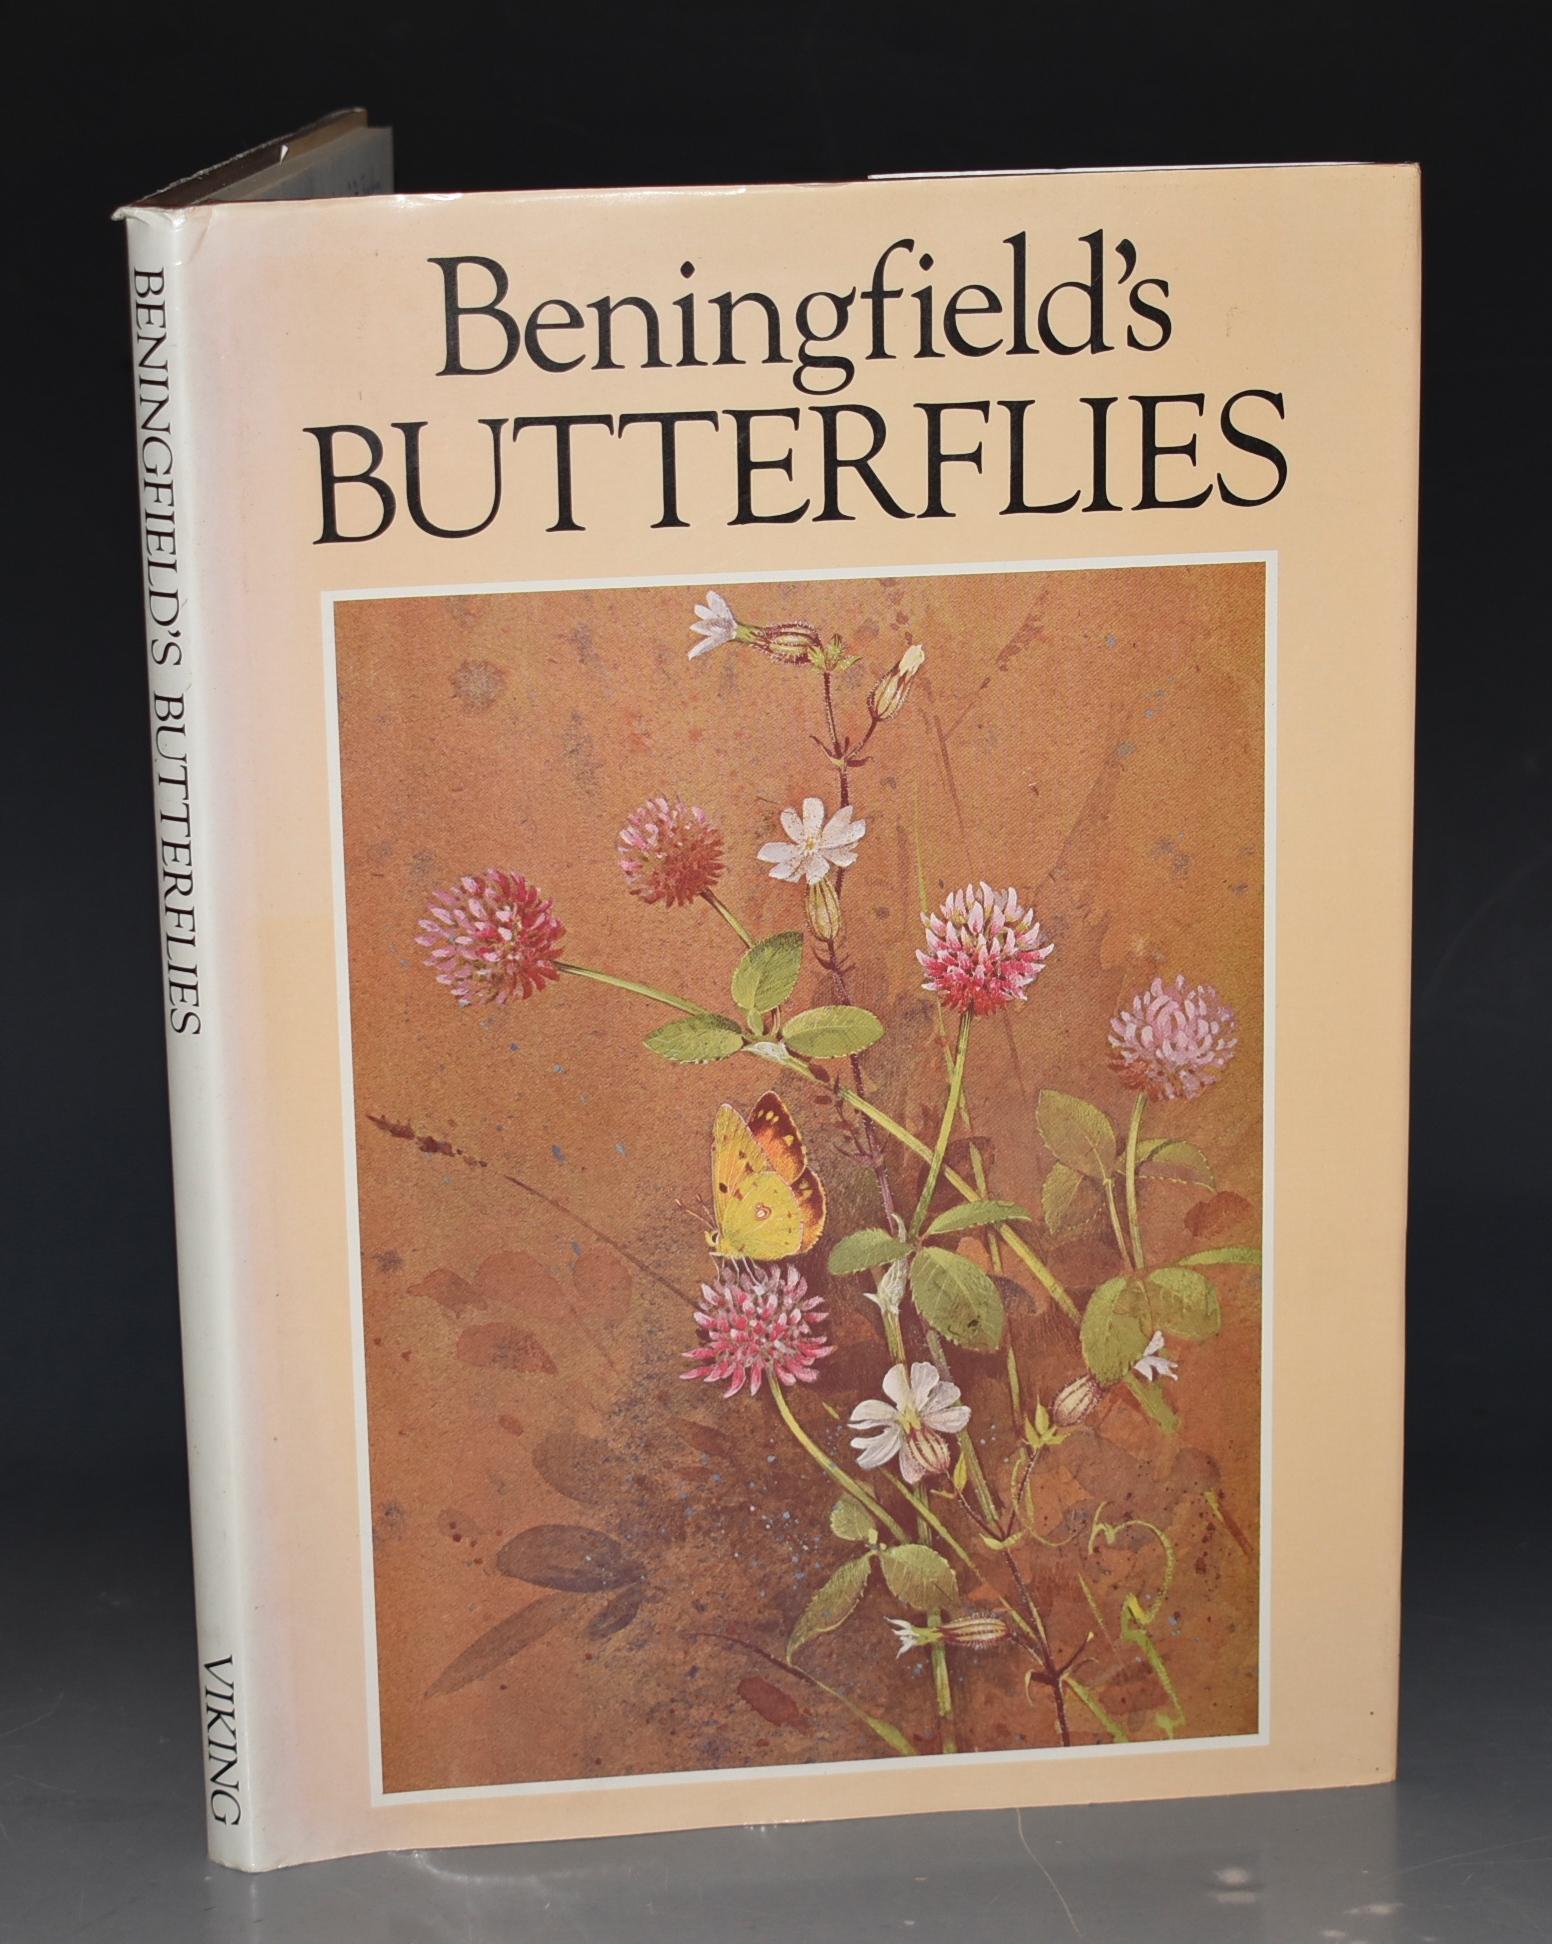 Image for Beningfield's Butterflies. Paintings and Drawings by Gordon beningfield. Text by Robert Goodden. SIGNED COPY.